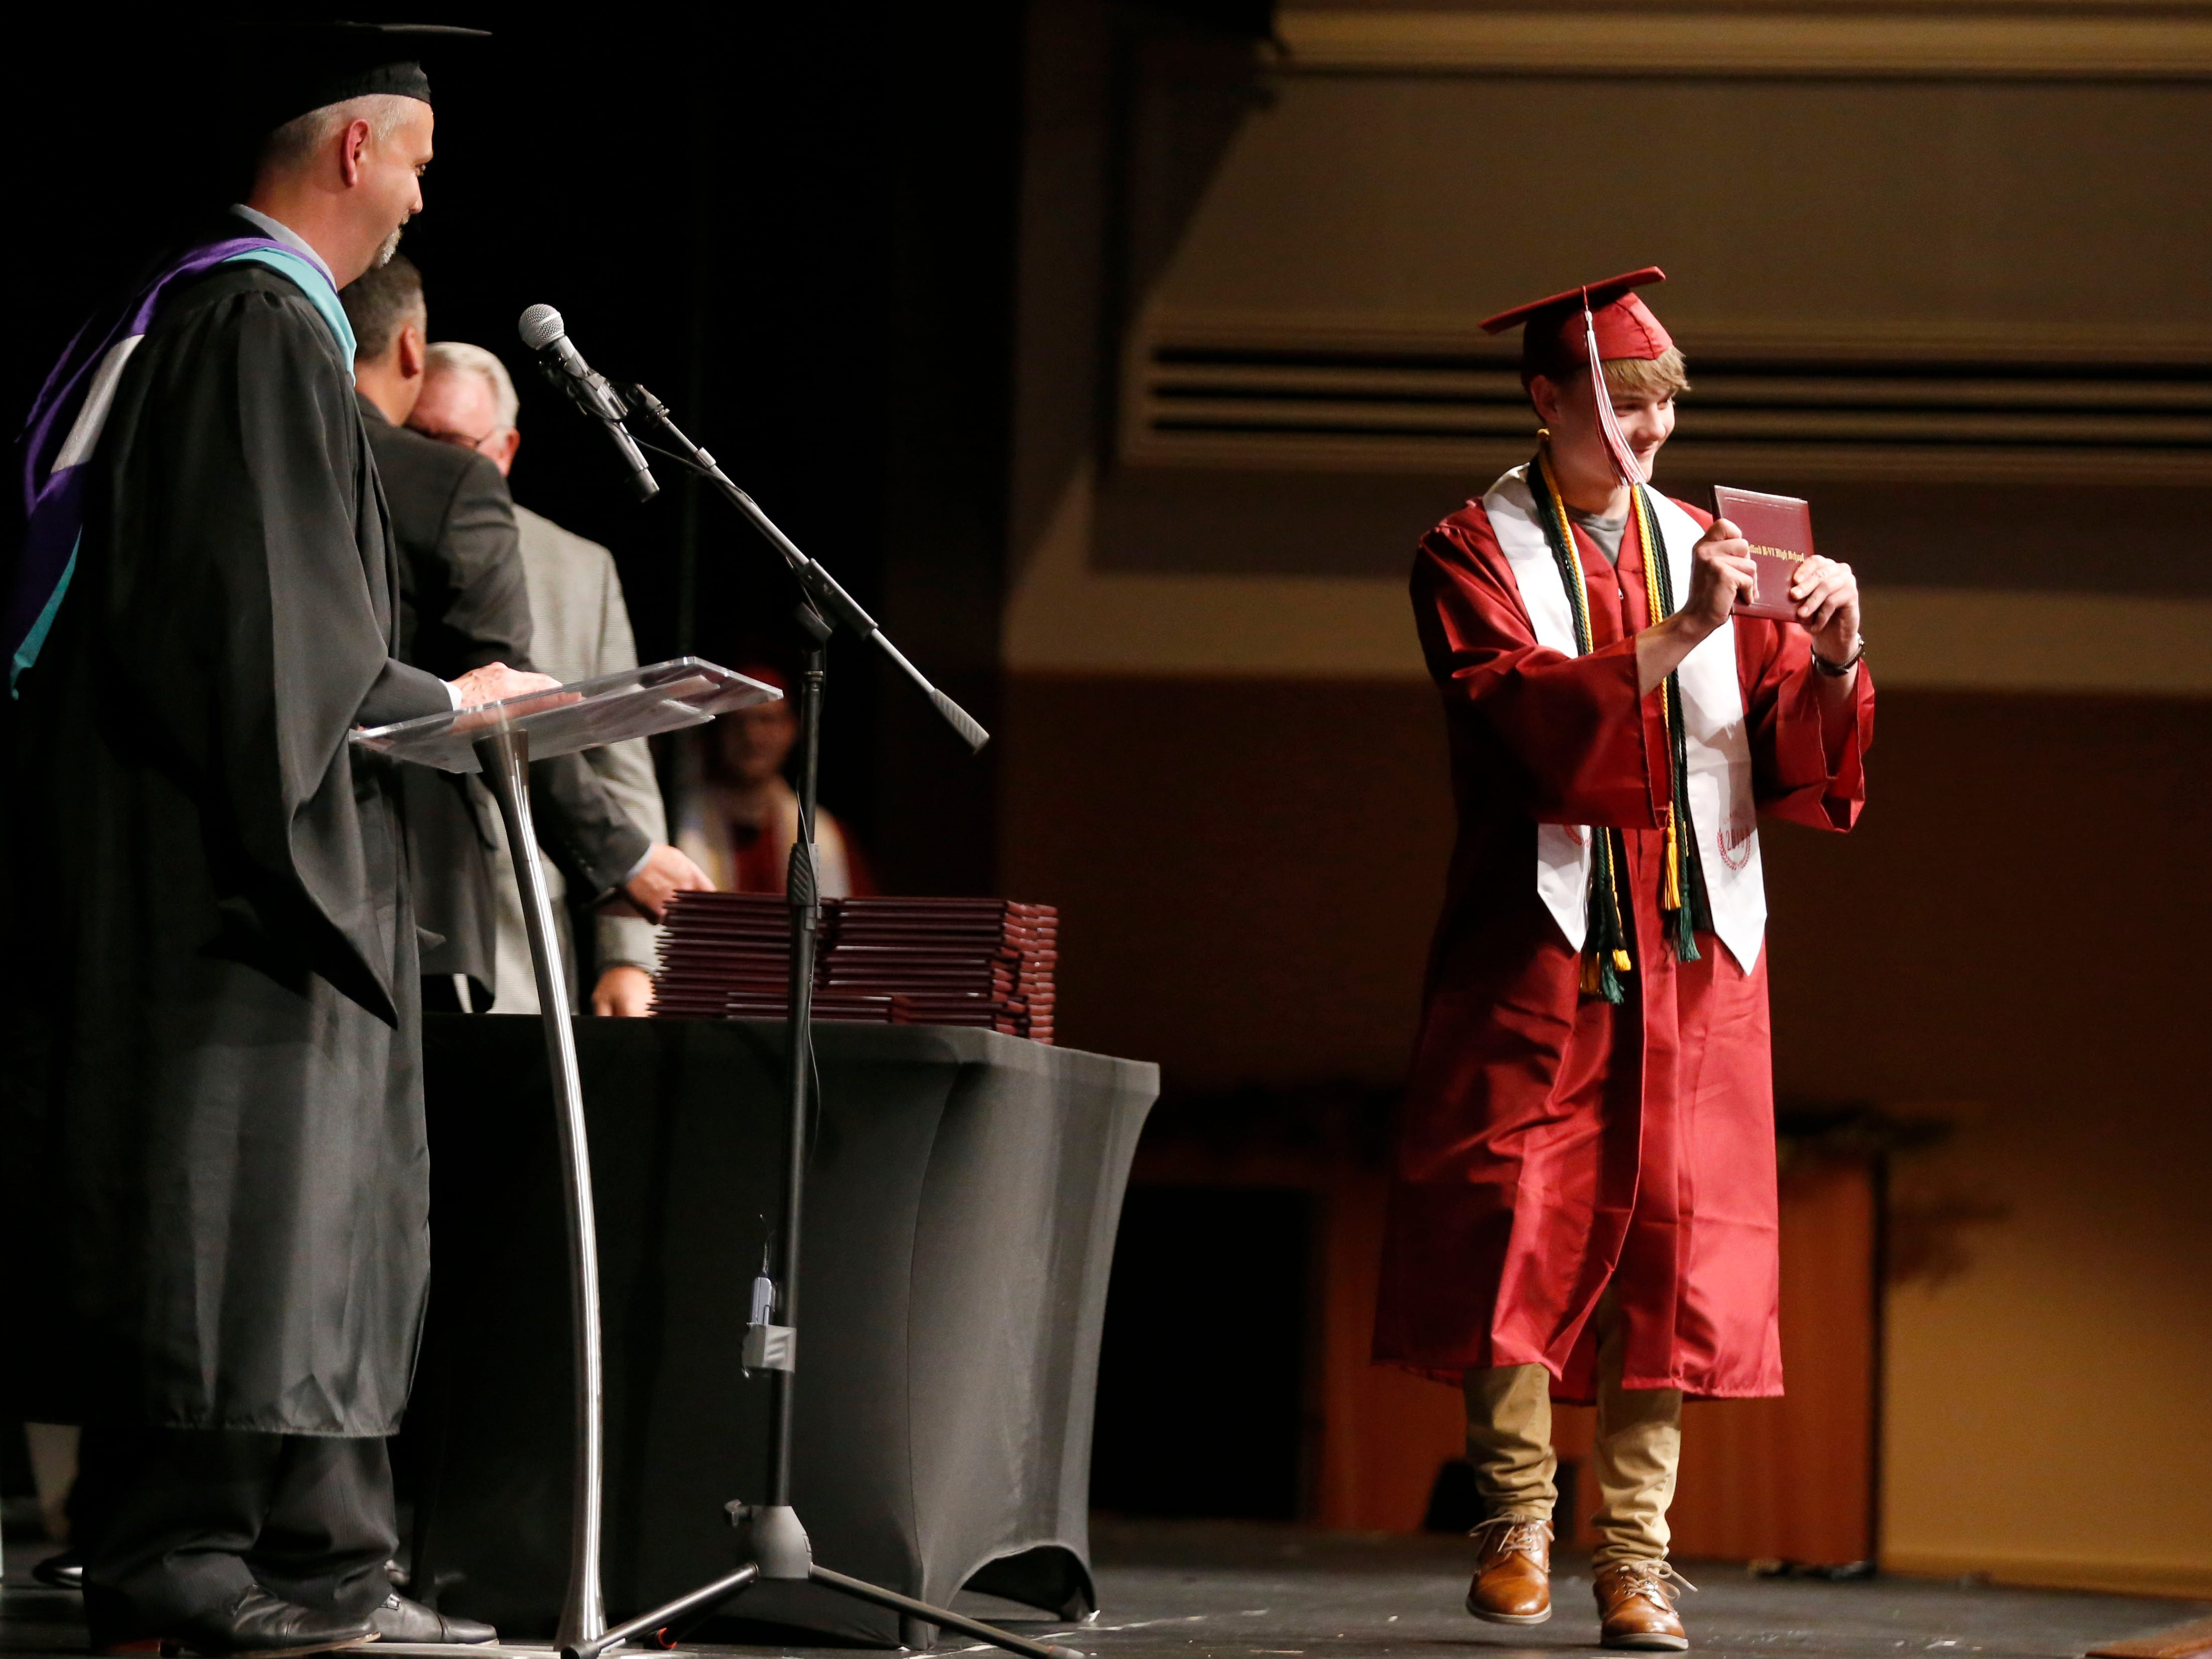 Joshua Luna shows off his diploma cover while crossing the stage during the Strafford High School Commencement Ceremony at High Street Baptist Church on Thursday, May 9, 2019.